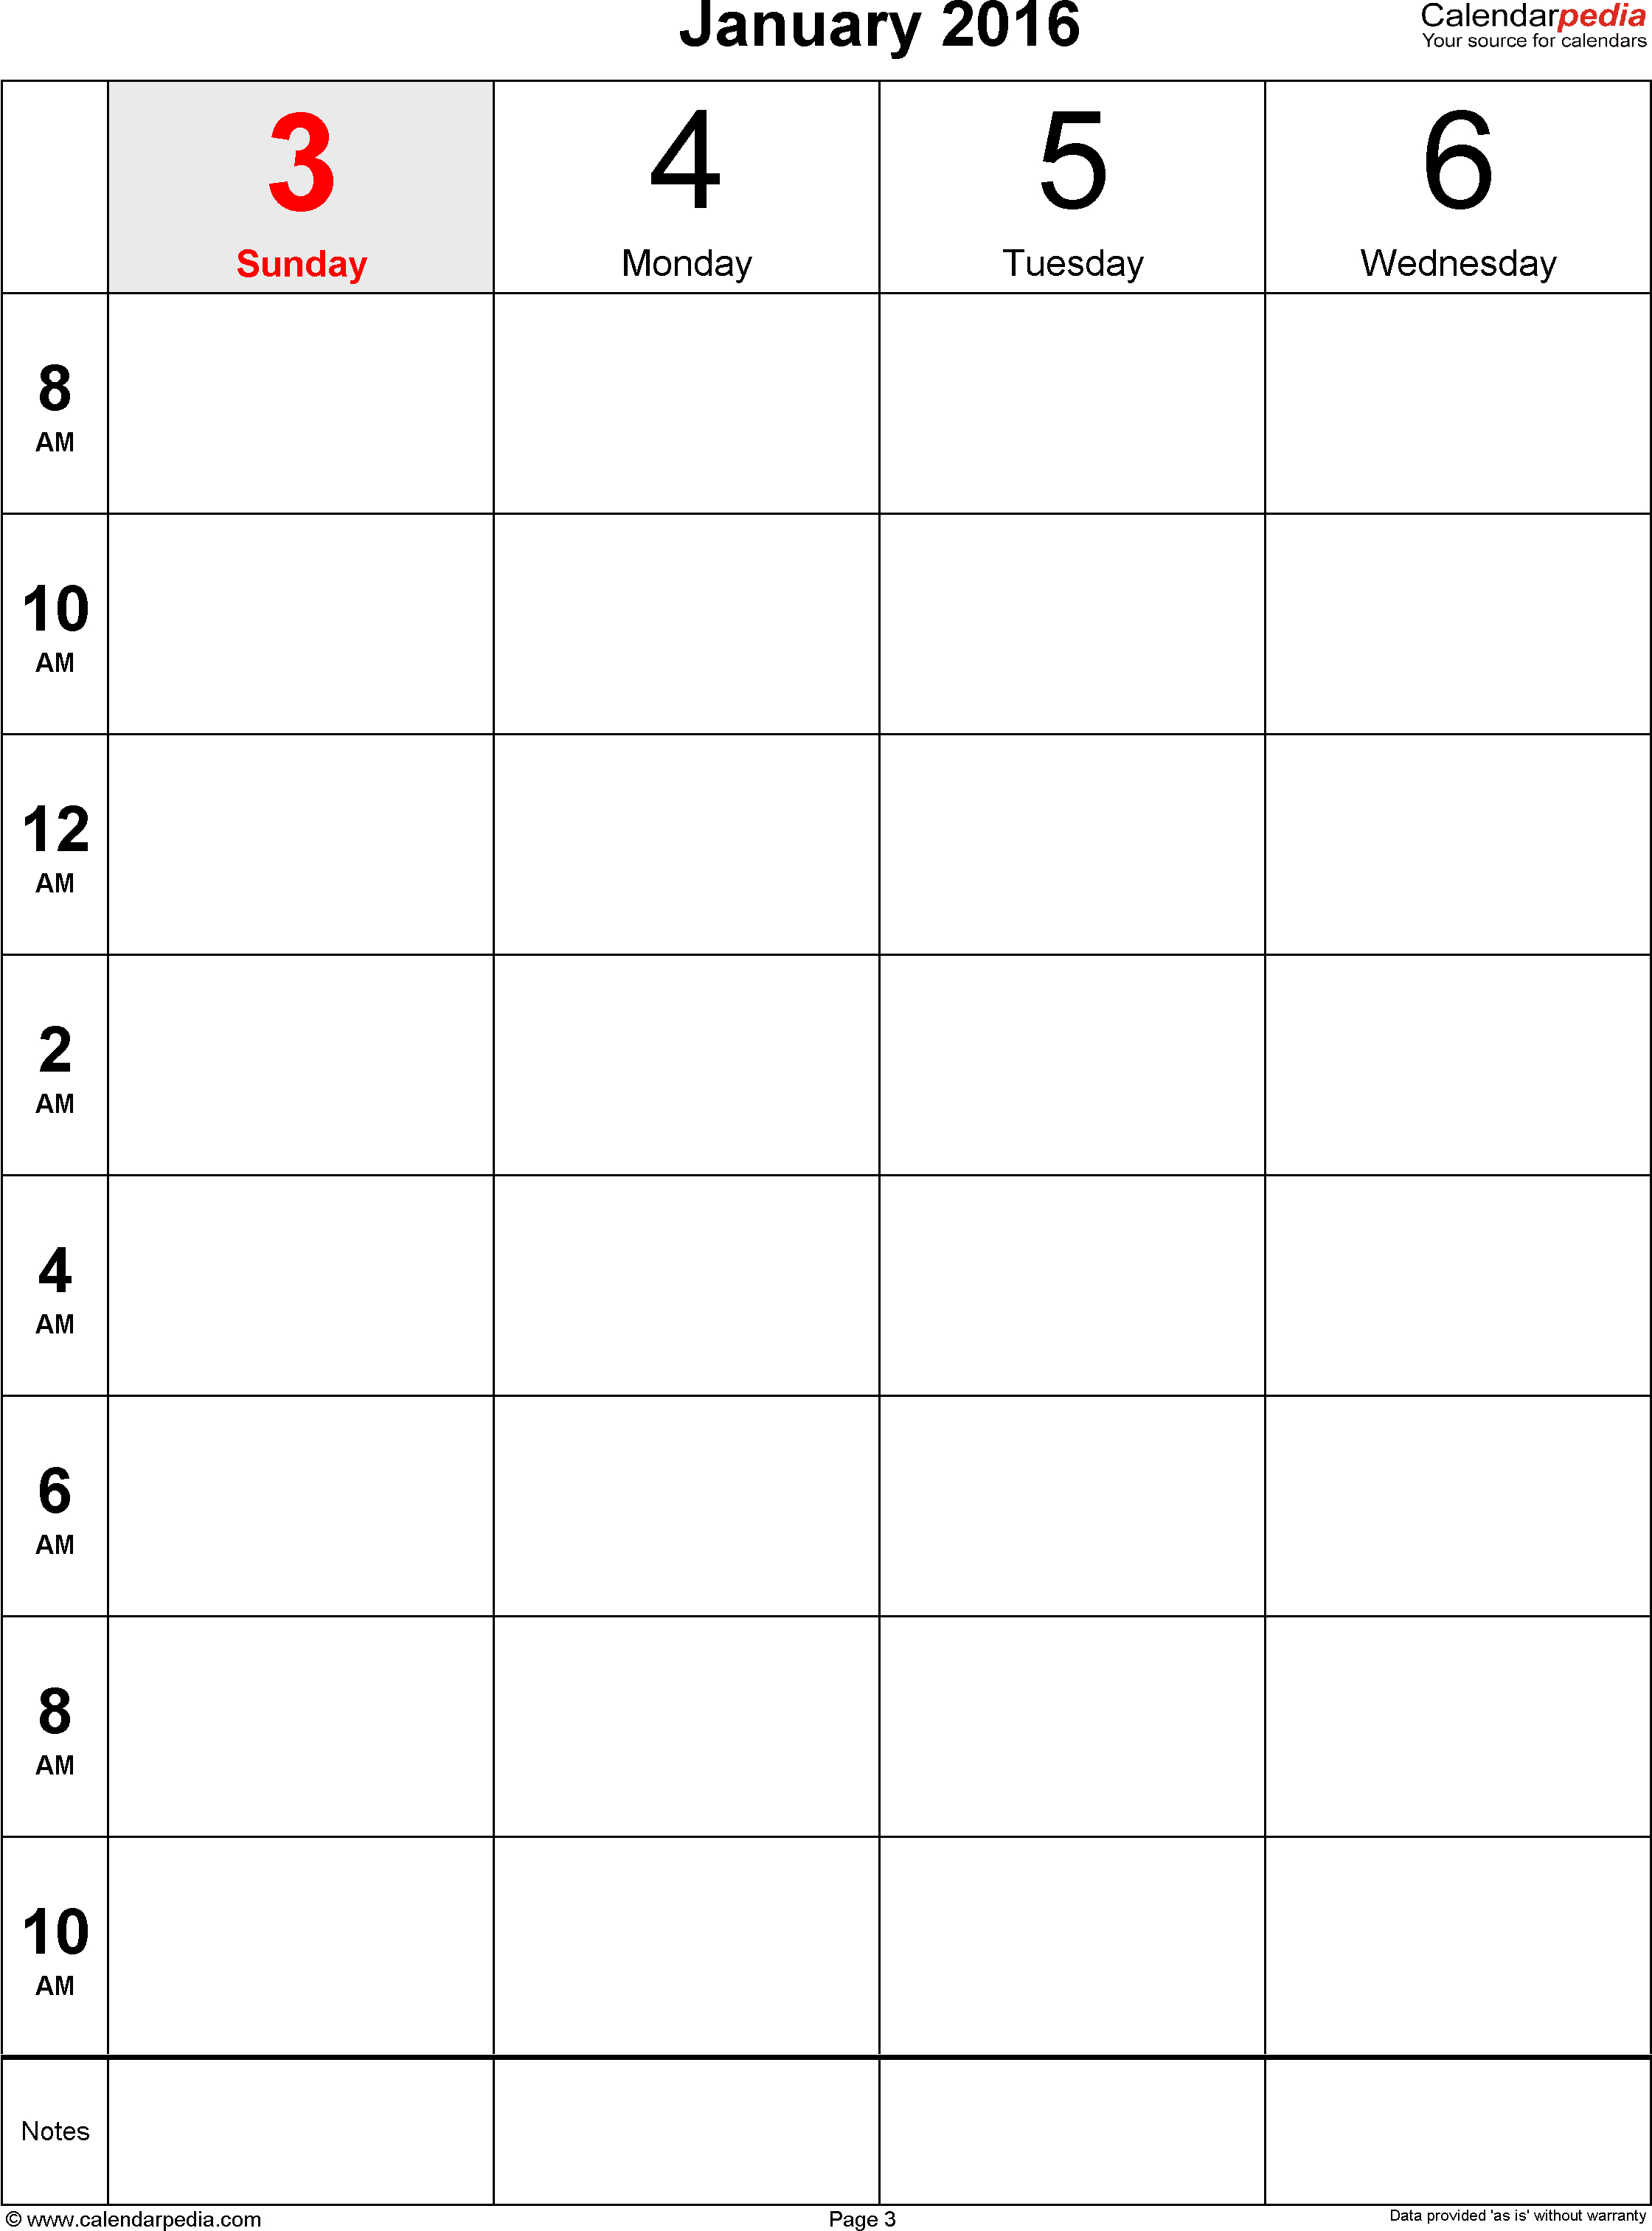 Weekly Calendar 2016 For Word - 12 Free Printable Templates intended for Blank 12 Hour Shift Schedule Templates